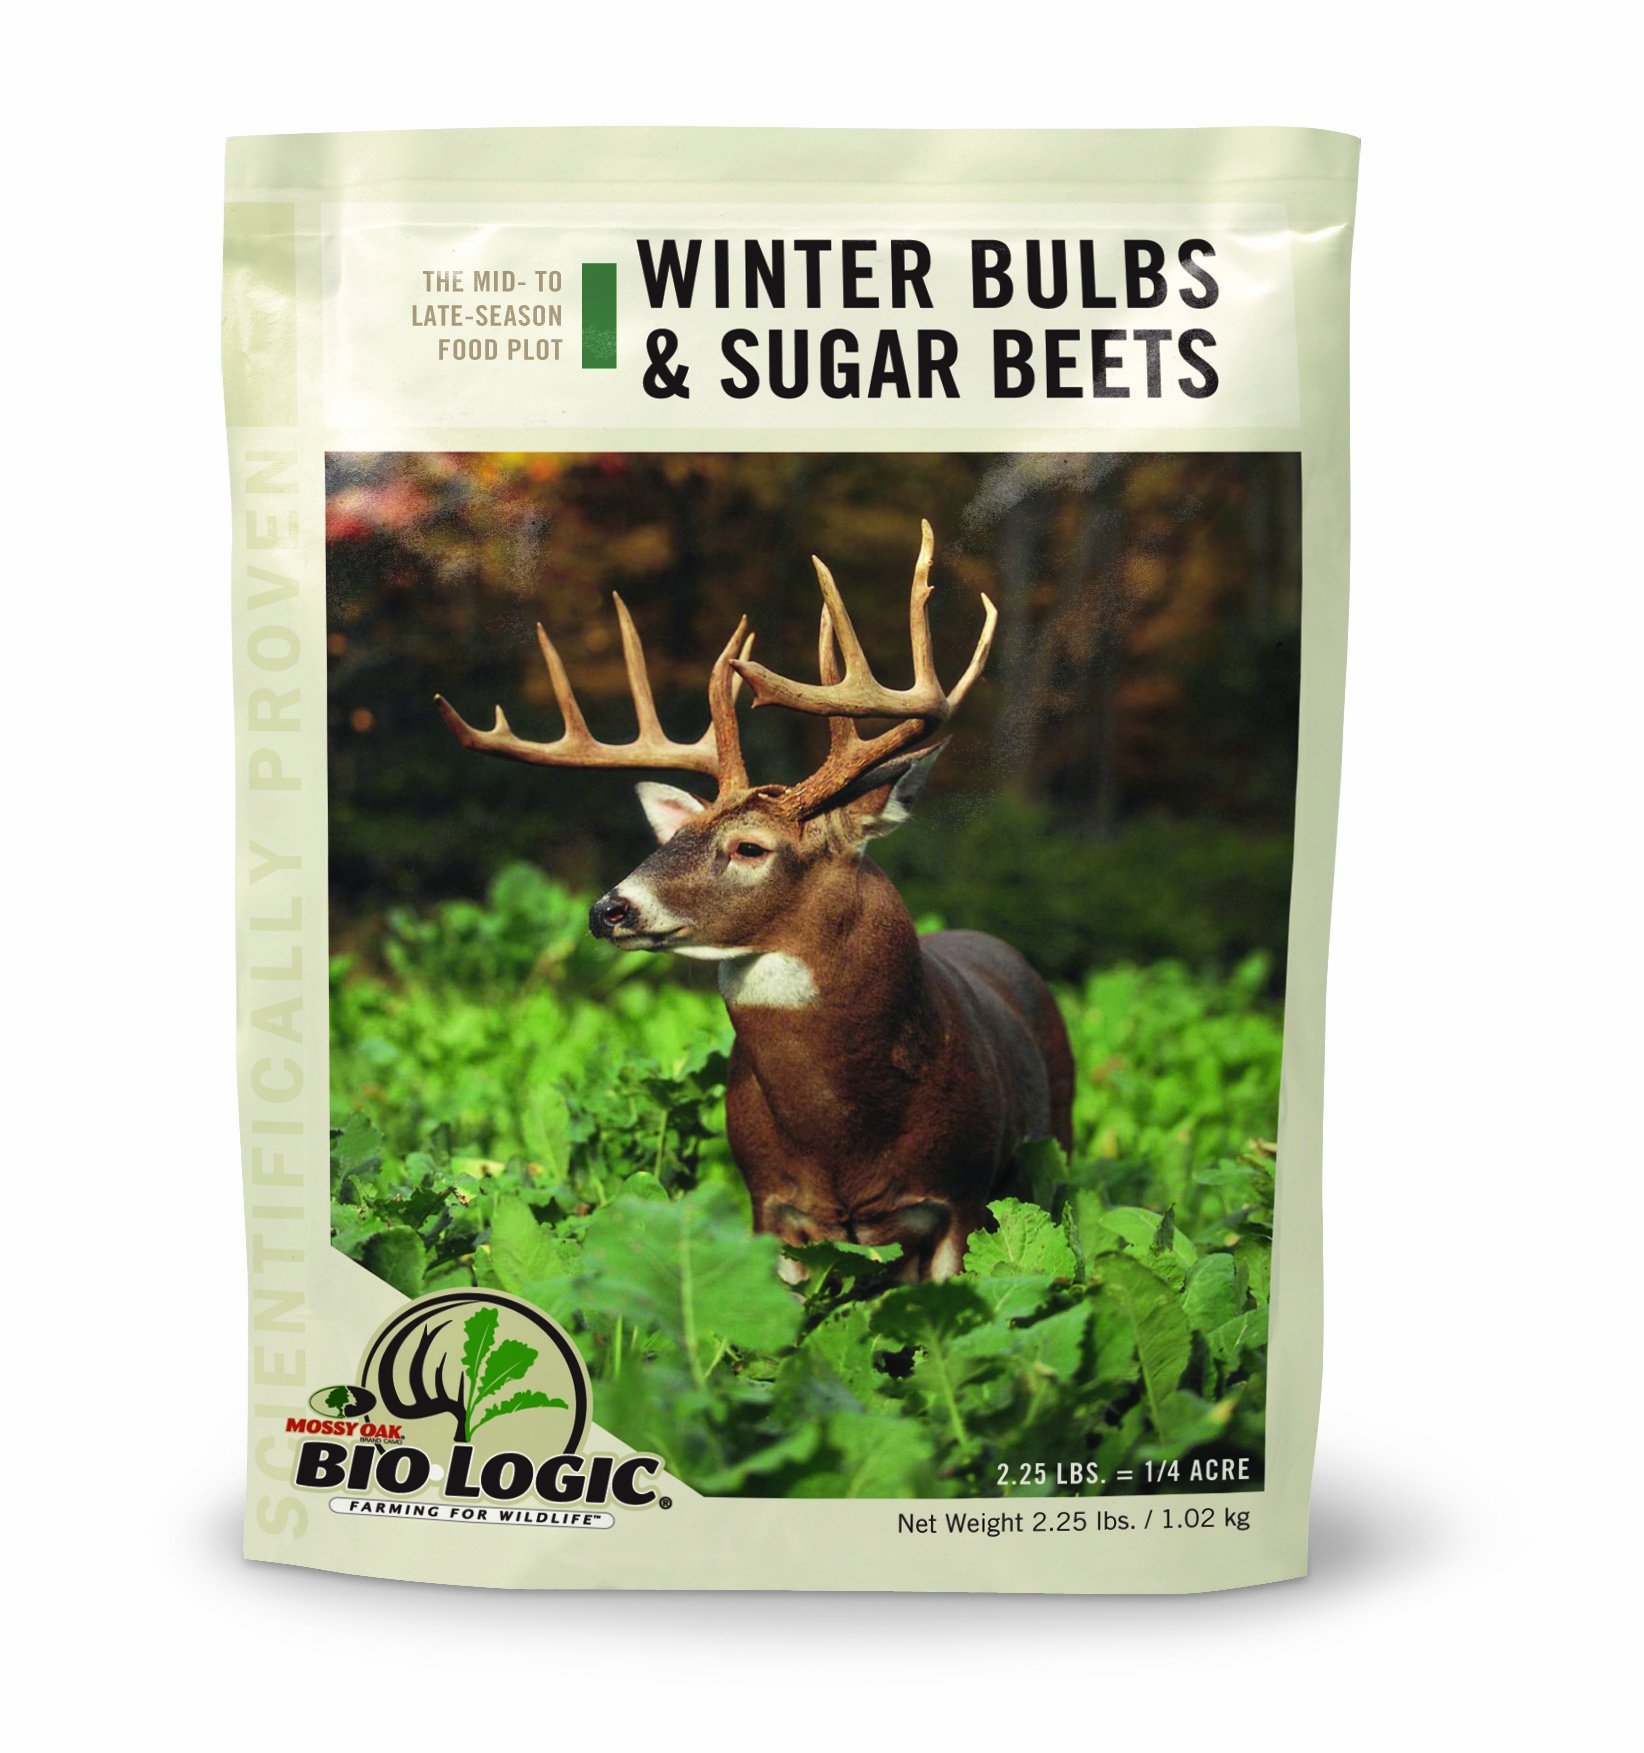 BioLogic Winter Bulbs and Sugar Beets Food Plots by BioLogic